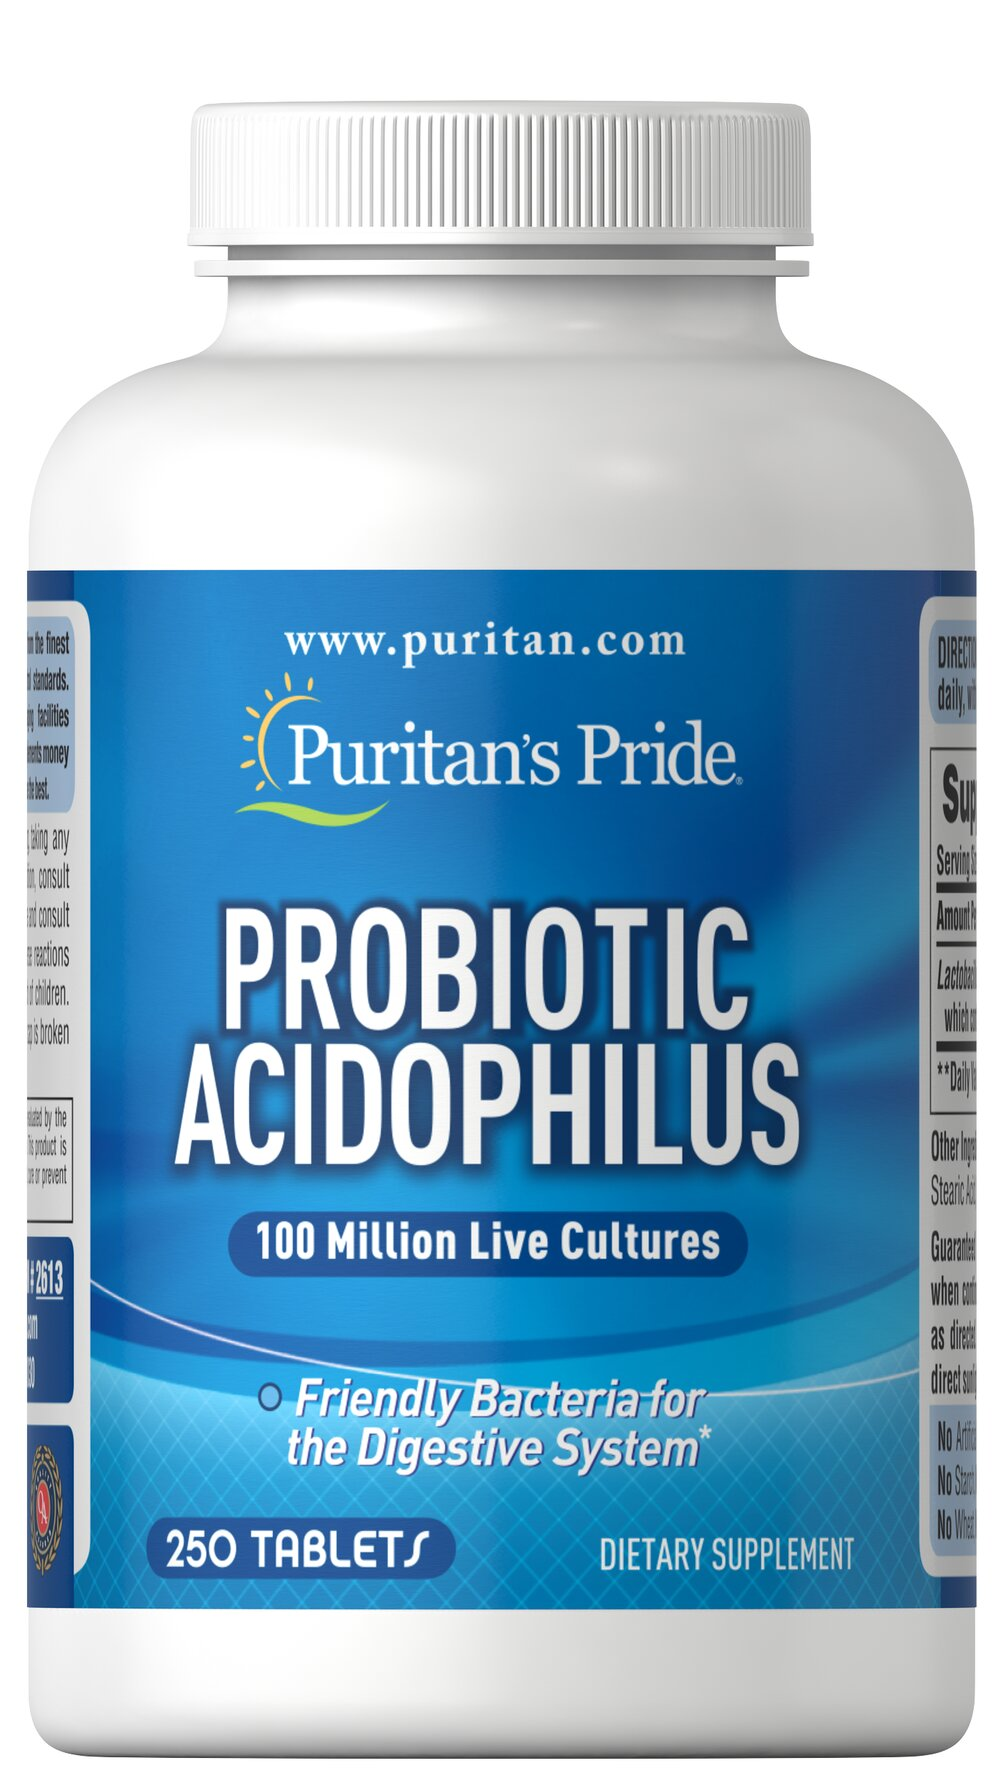 Probiotic Acidophilus <p>Acidophilus supports a favorable environment for the absorption of nutrients, encourages intestinal microflora balance, and promotes the healthy functioning of the intestinal system.** Our Probiotic Acidophilus contains over 100 million active Lactobacillus Acidophilus (including the naturally occurring metabolic product produced by Lactobacilli) at the time of manufacture.</p> 250 Capsules  $17.99